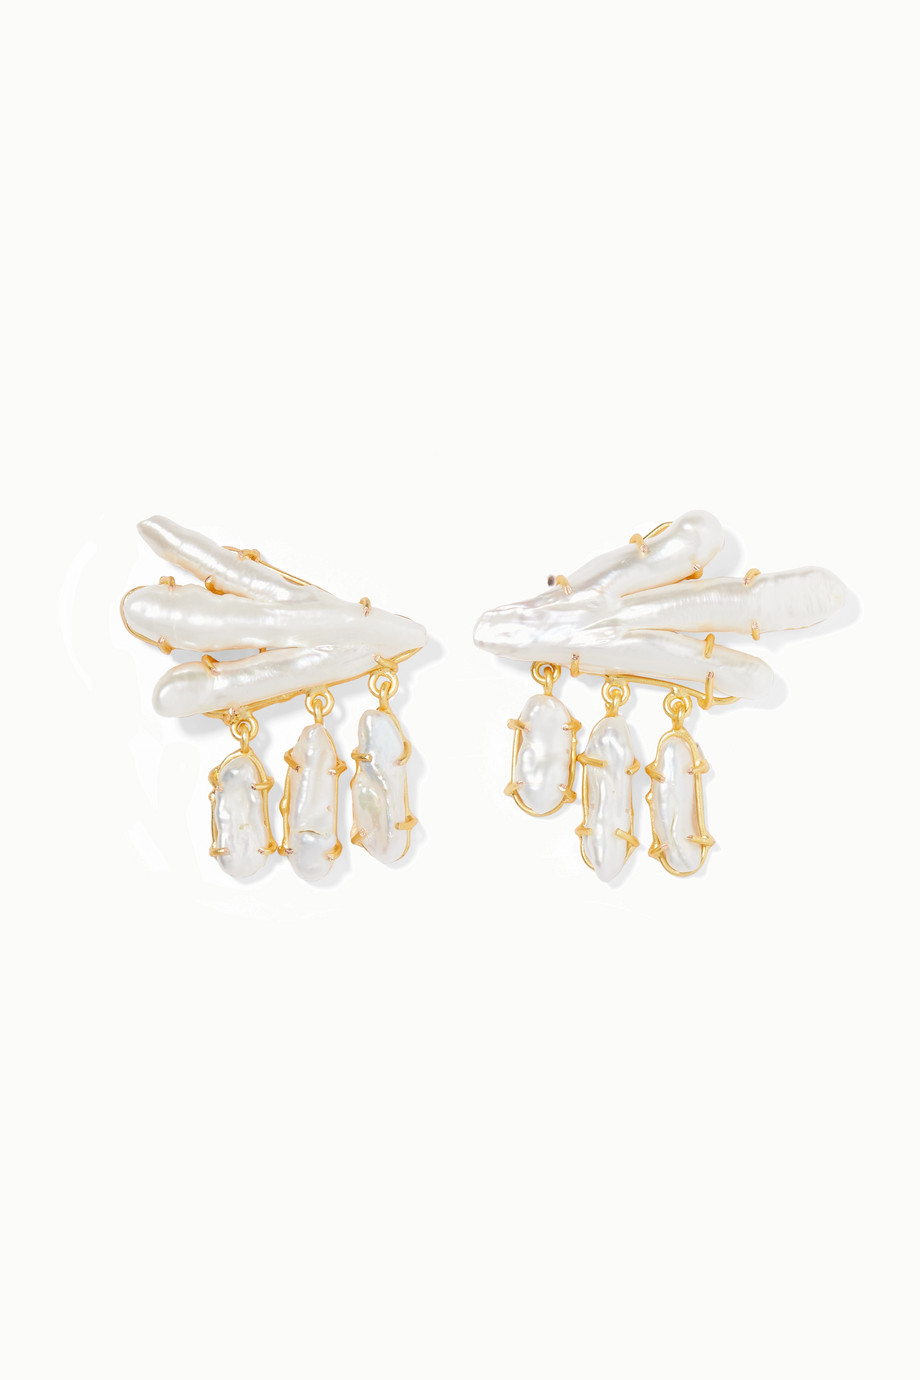 Peet Dullaert Vanura gold-plated pearl earrings